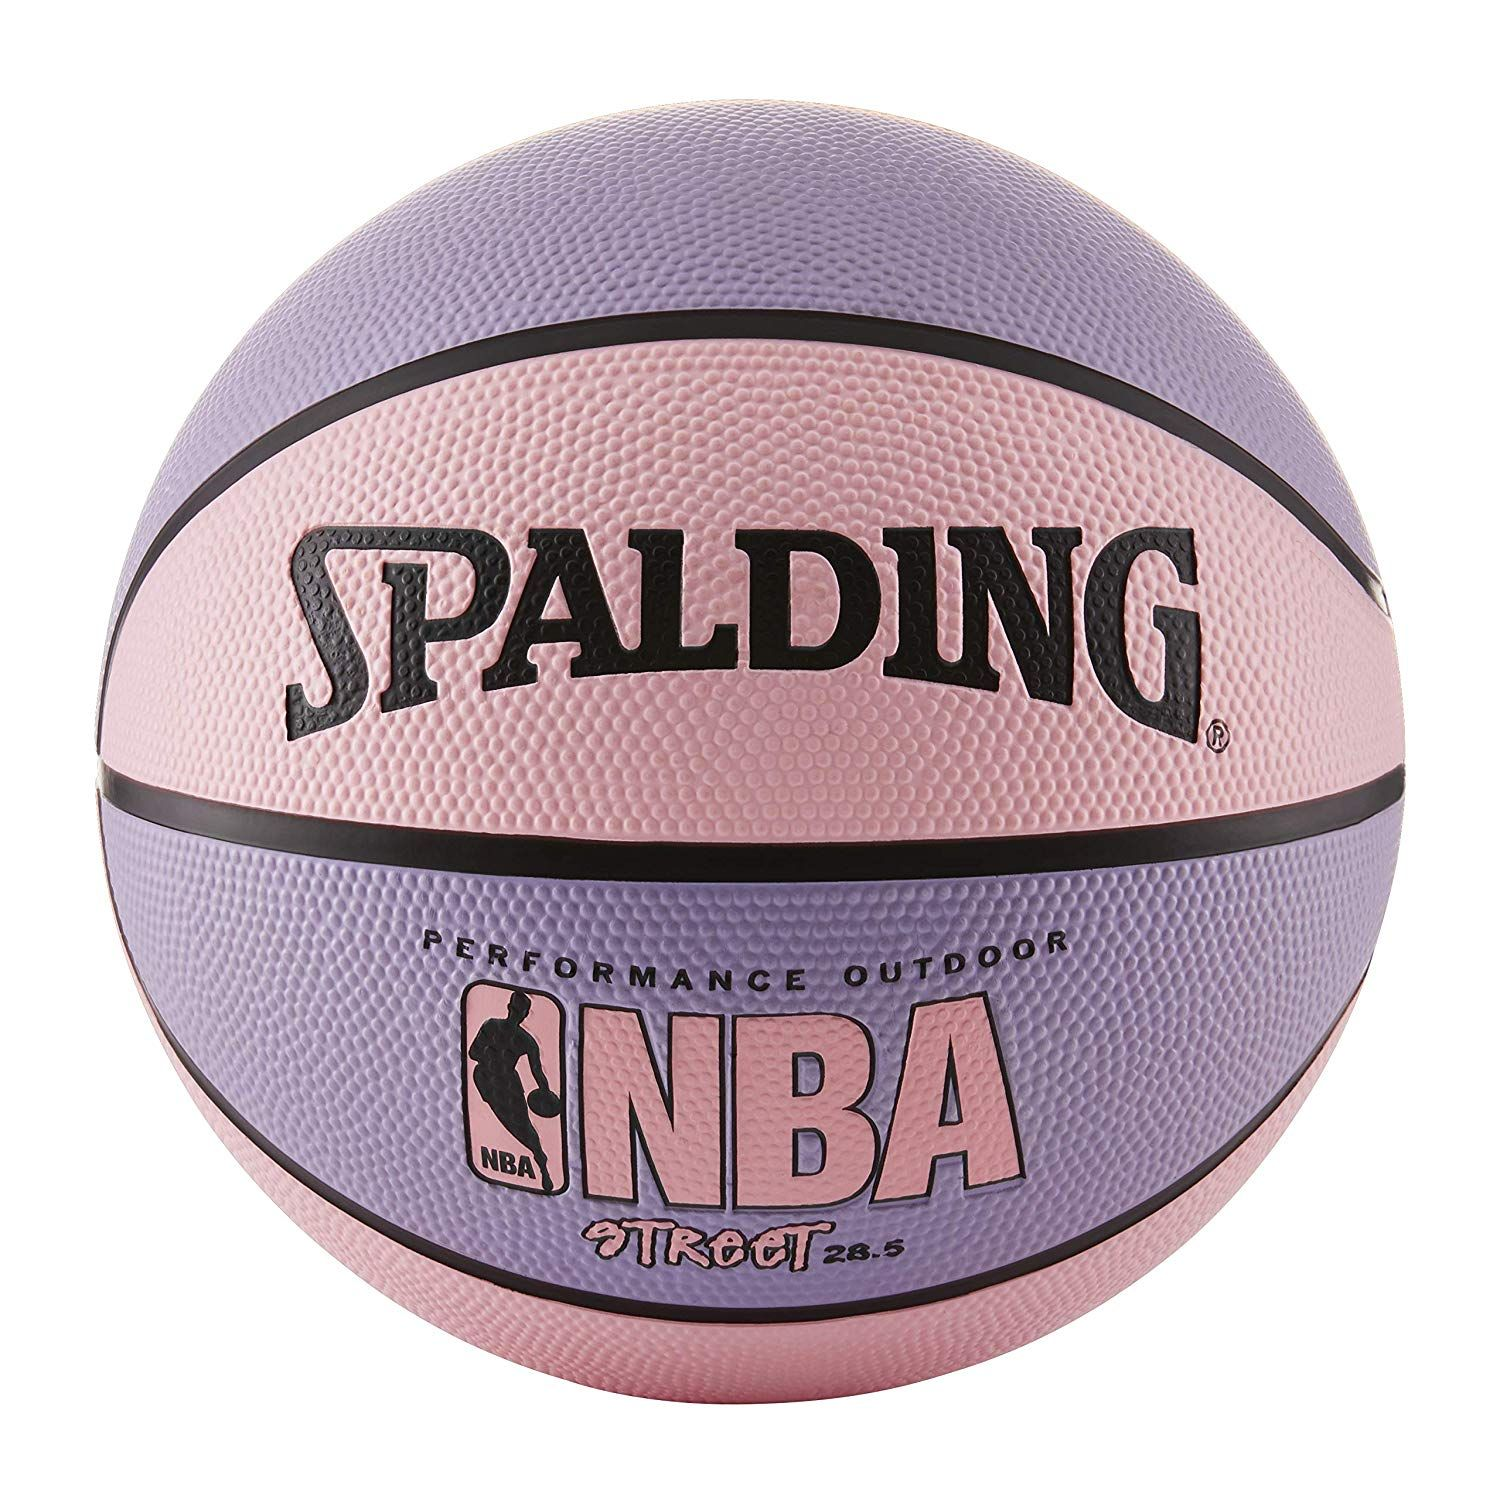 Spalding Nba Street Basketball Pink Purple Intermediate Size 6 28 5 Street Basketball Spalding Basketball Workouts